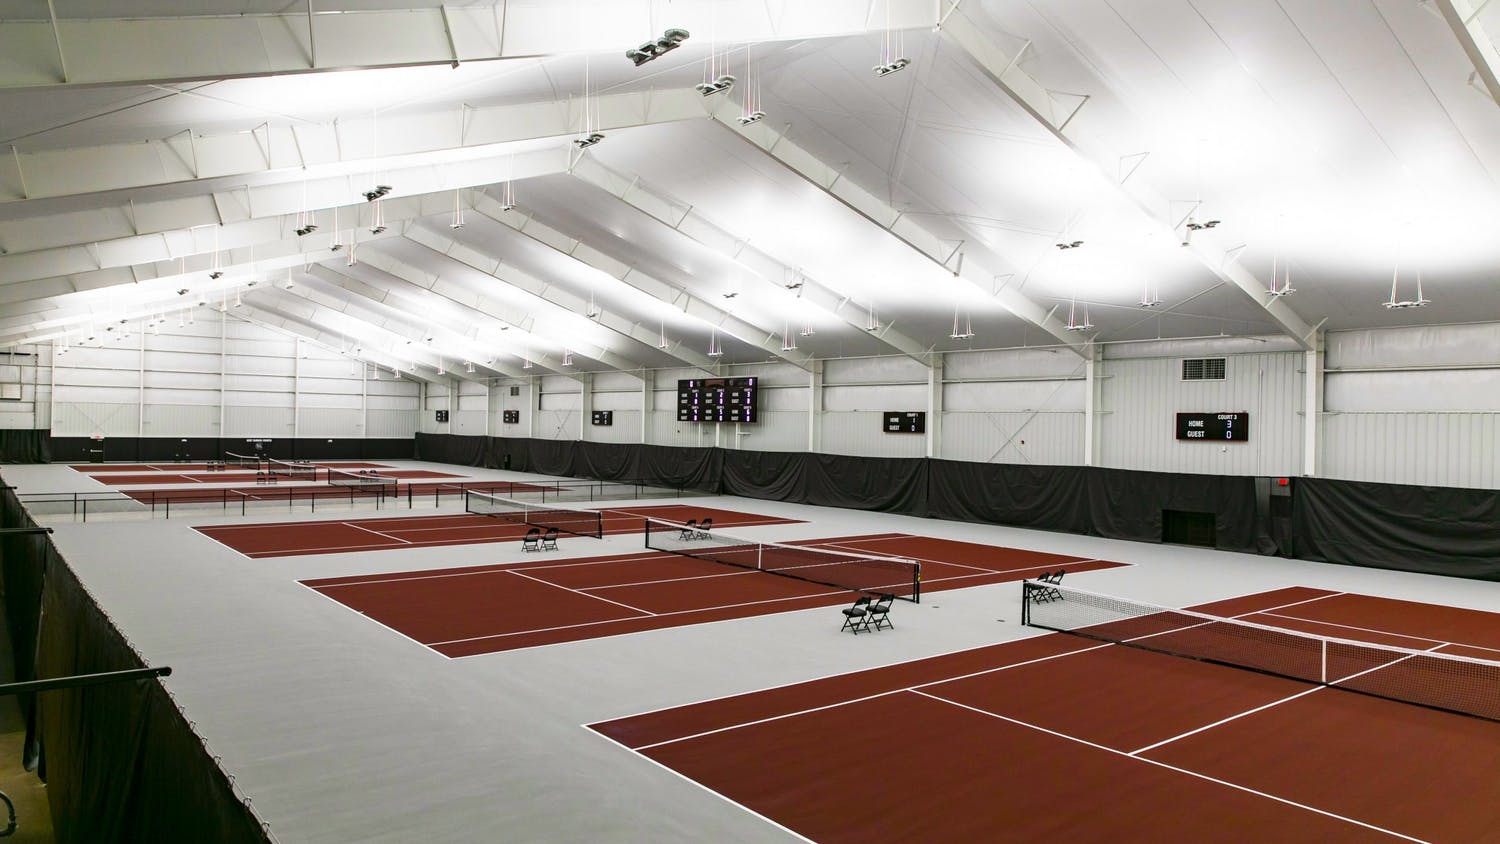 The new South Carolina Indoor Tennis Center was unveiled in a ceremony on Friday. The 55,000 square foot facility allows players to compete year-round on one of six courts, with locker rooms and an athletics training space.